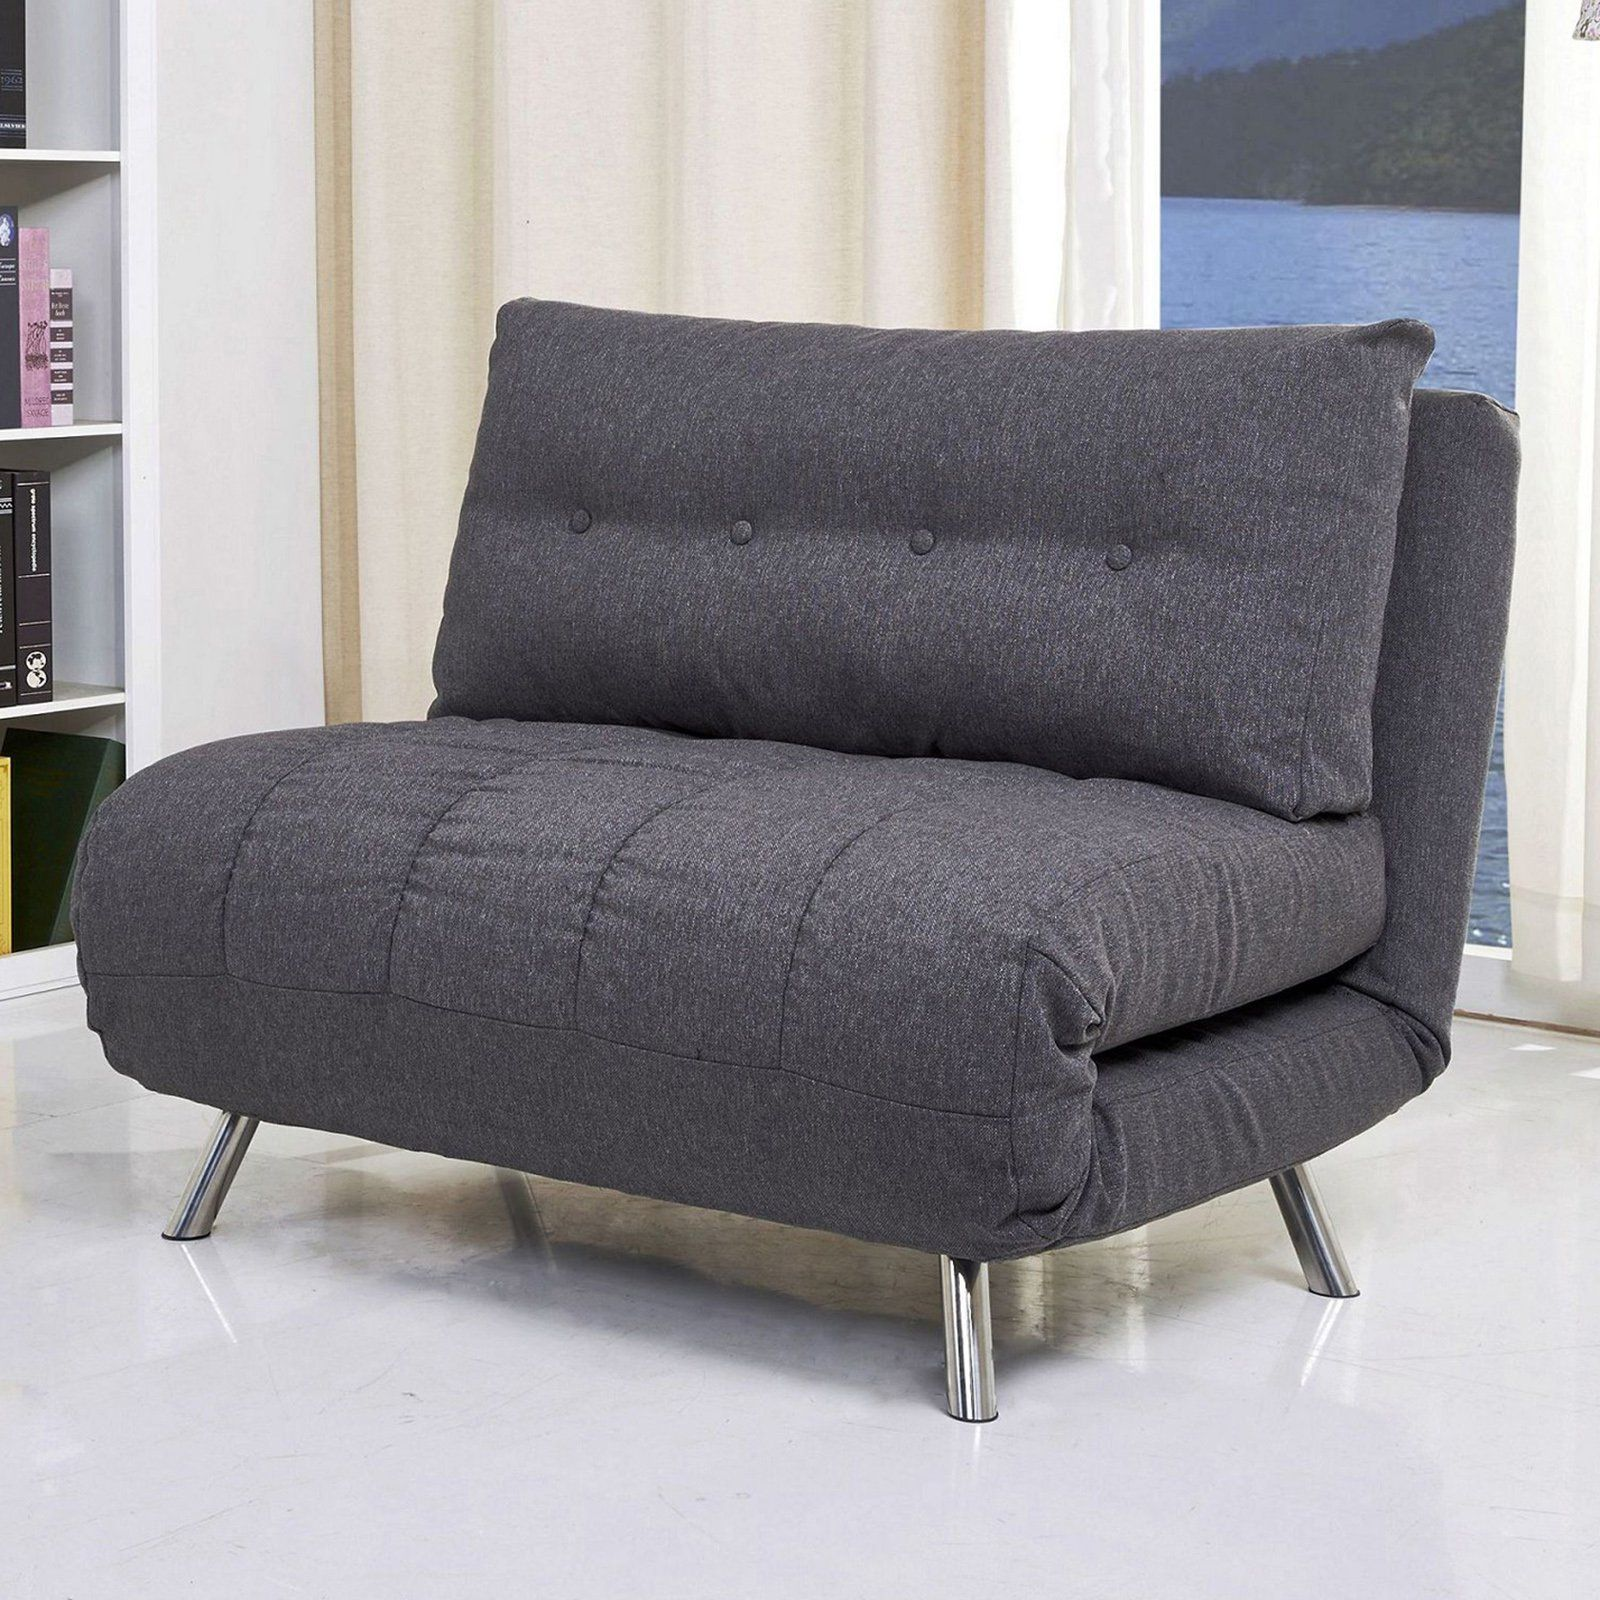 Swell Gold Sparrow Tampa Fabric Convertible Big Chair Bed Gray In Ocoug Best Dining Table And Chair Ideas Images Ocougorg